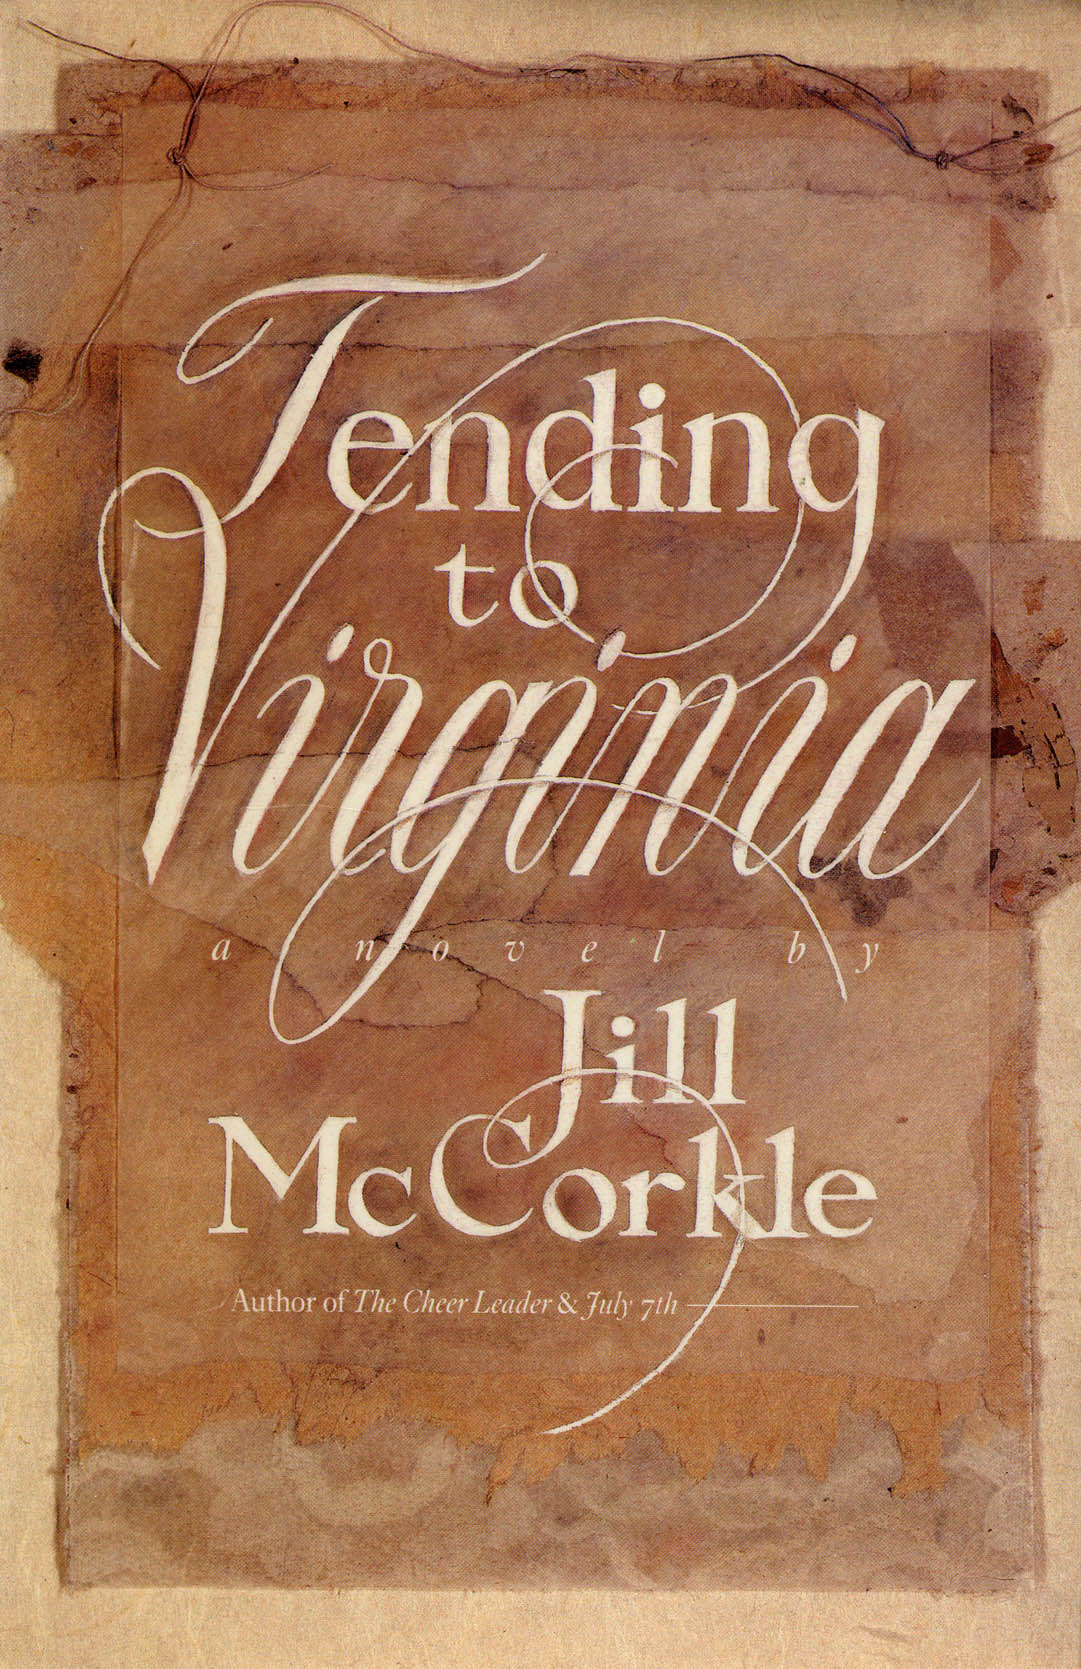 Tending to Virginia: A Novel By: Jill McCorkle